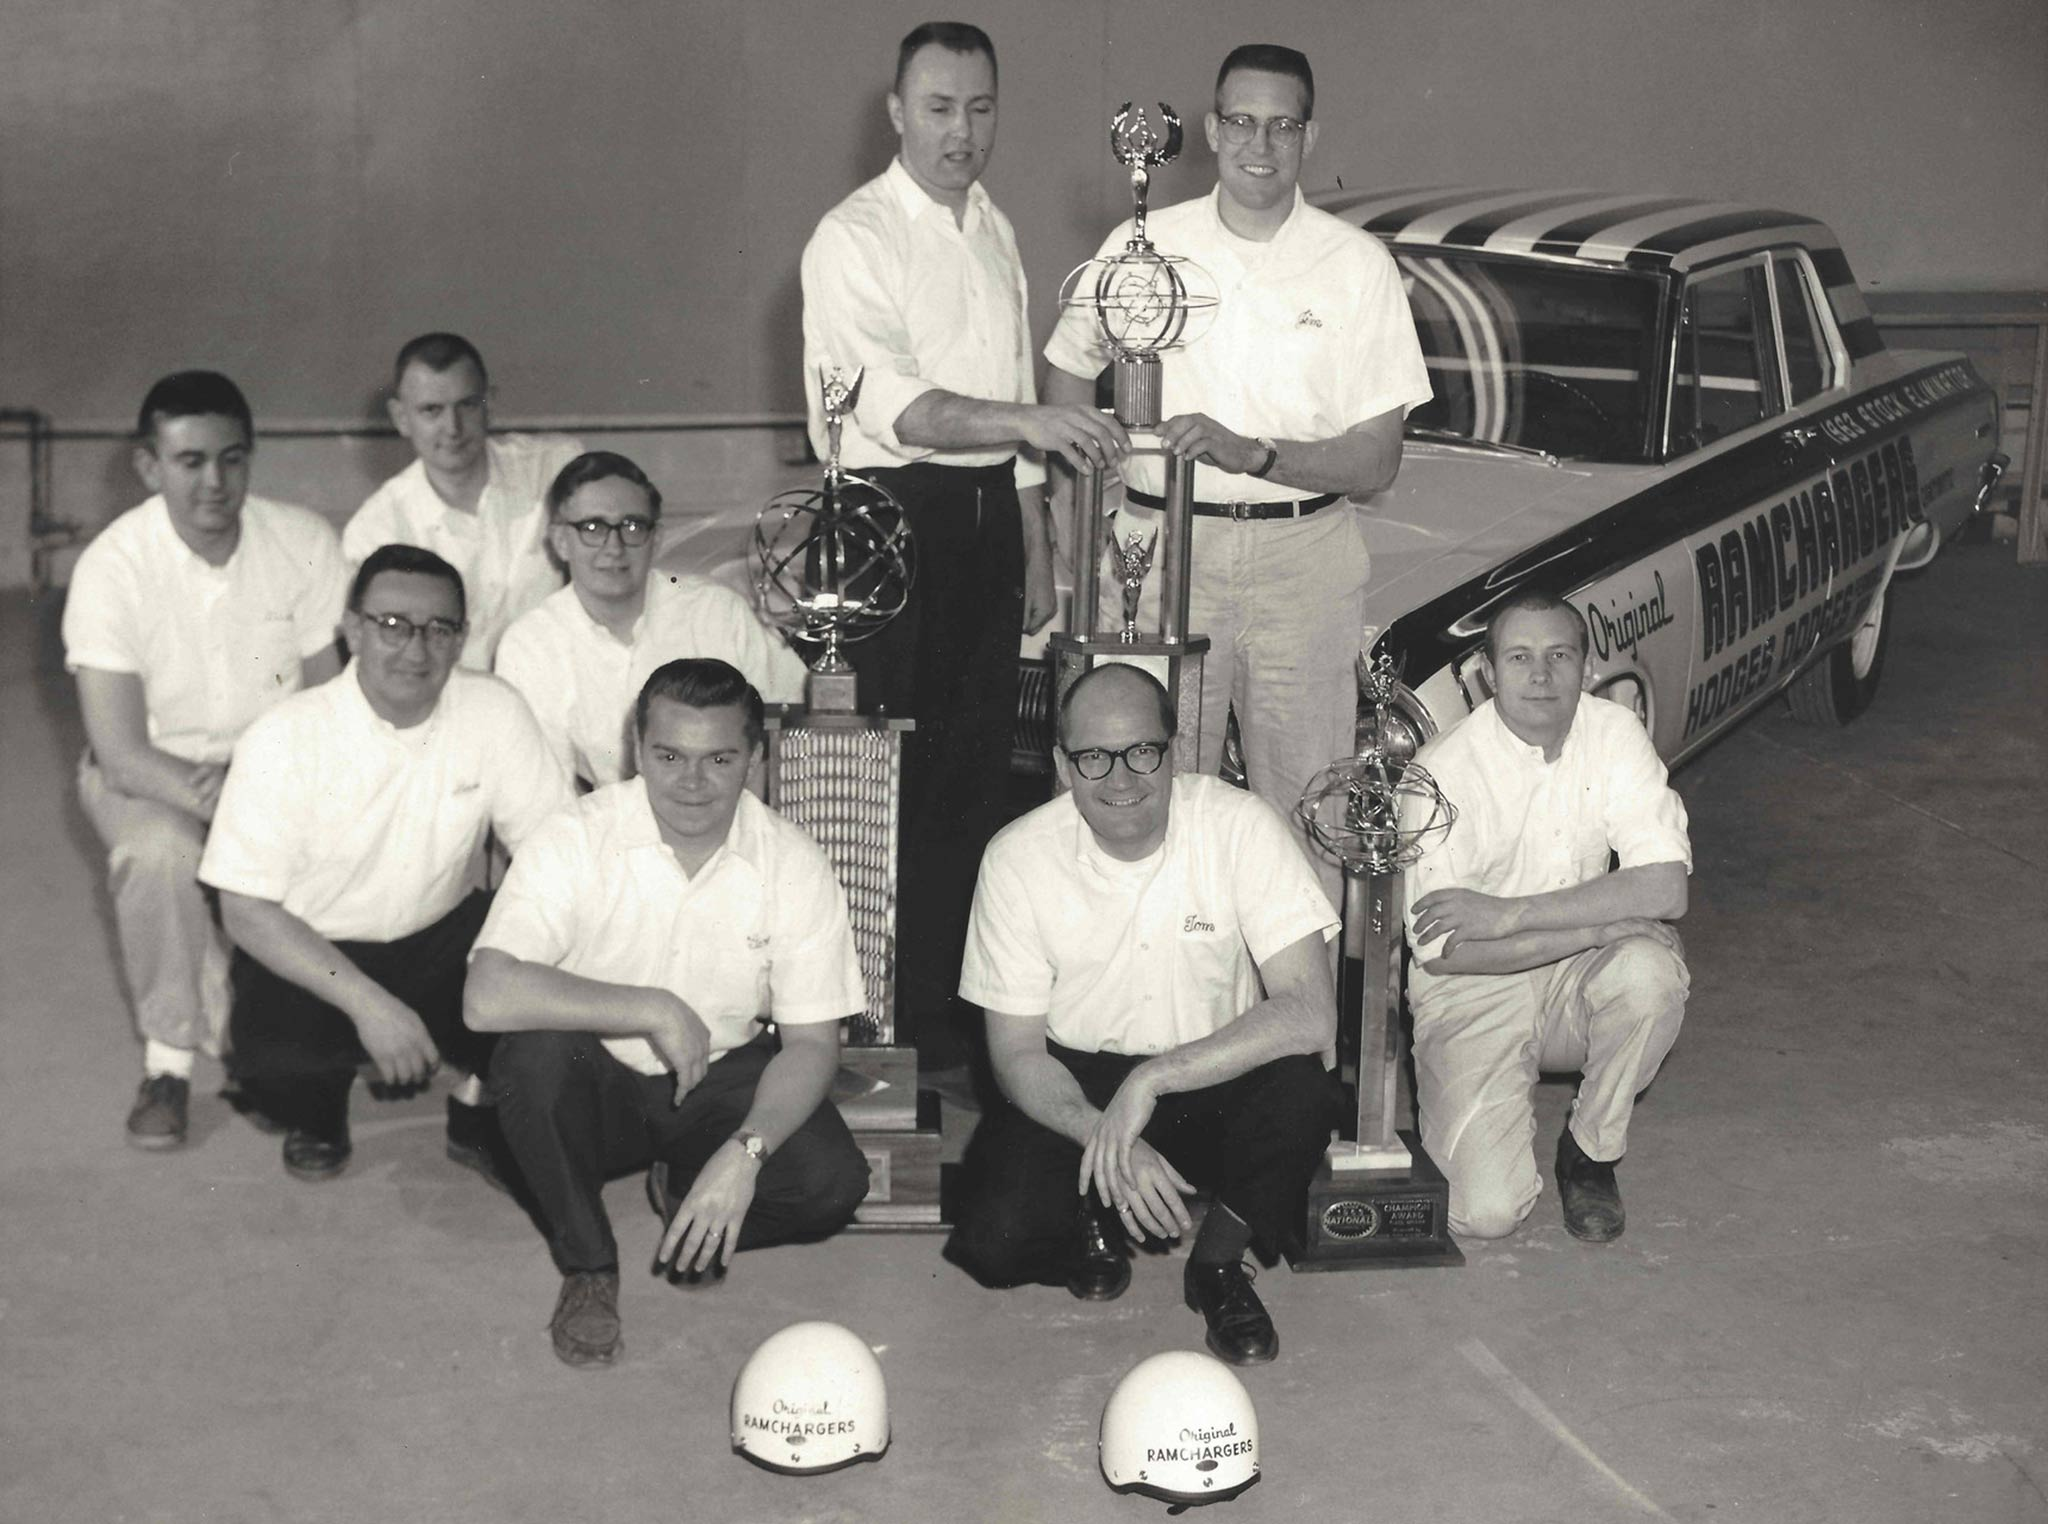 The Ramchargers team with the spoils of victory that same year. From left to right, standing: Herman Mozer and Jim Thornton; kneeling: Dick Maxwell, Dan Mancini, Mike Buckel, Tom Coddington, Gary Congdon, Tom Hoover, and Dale Reeker.